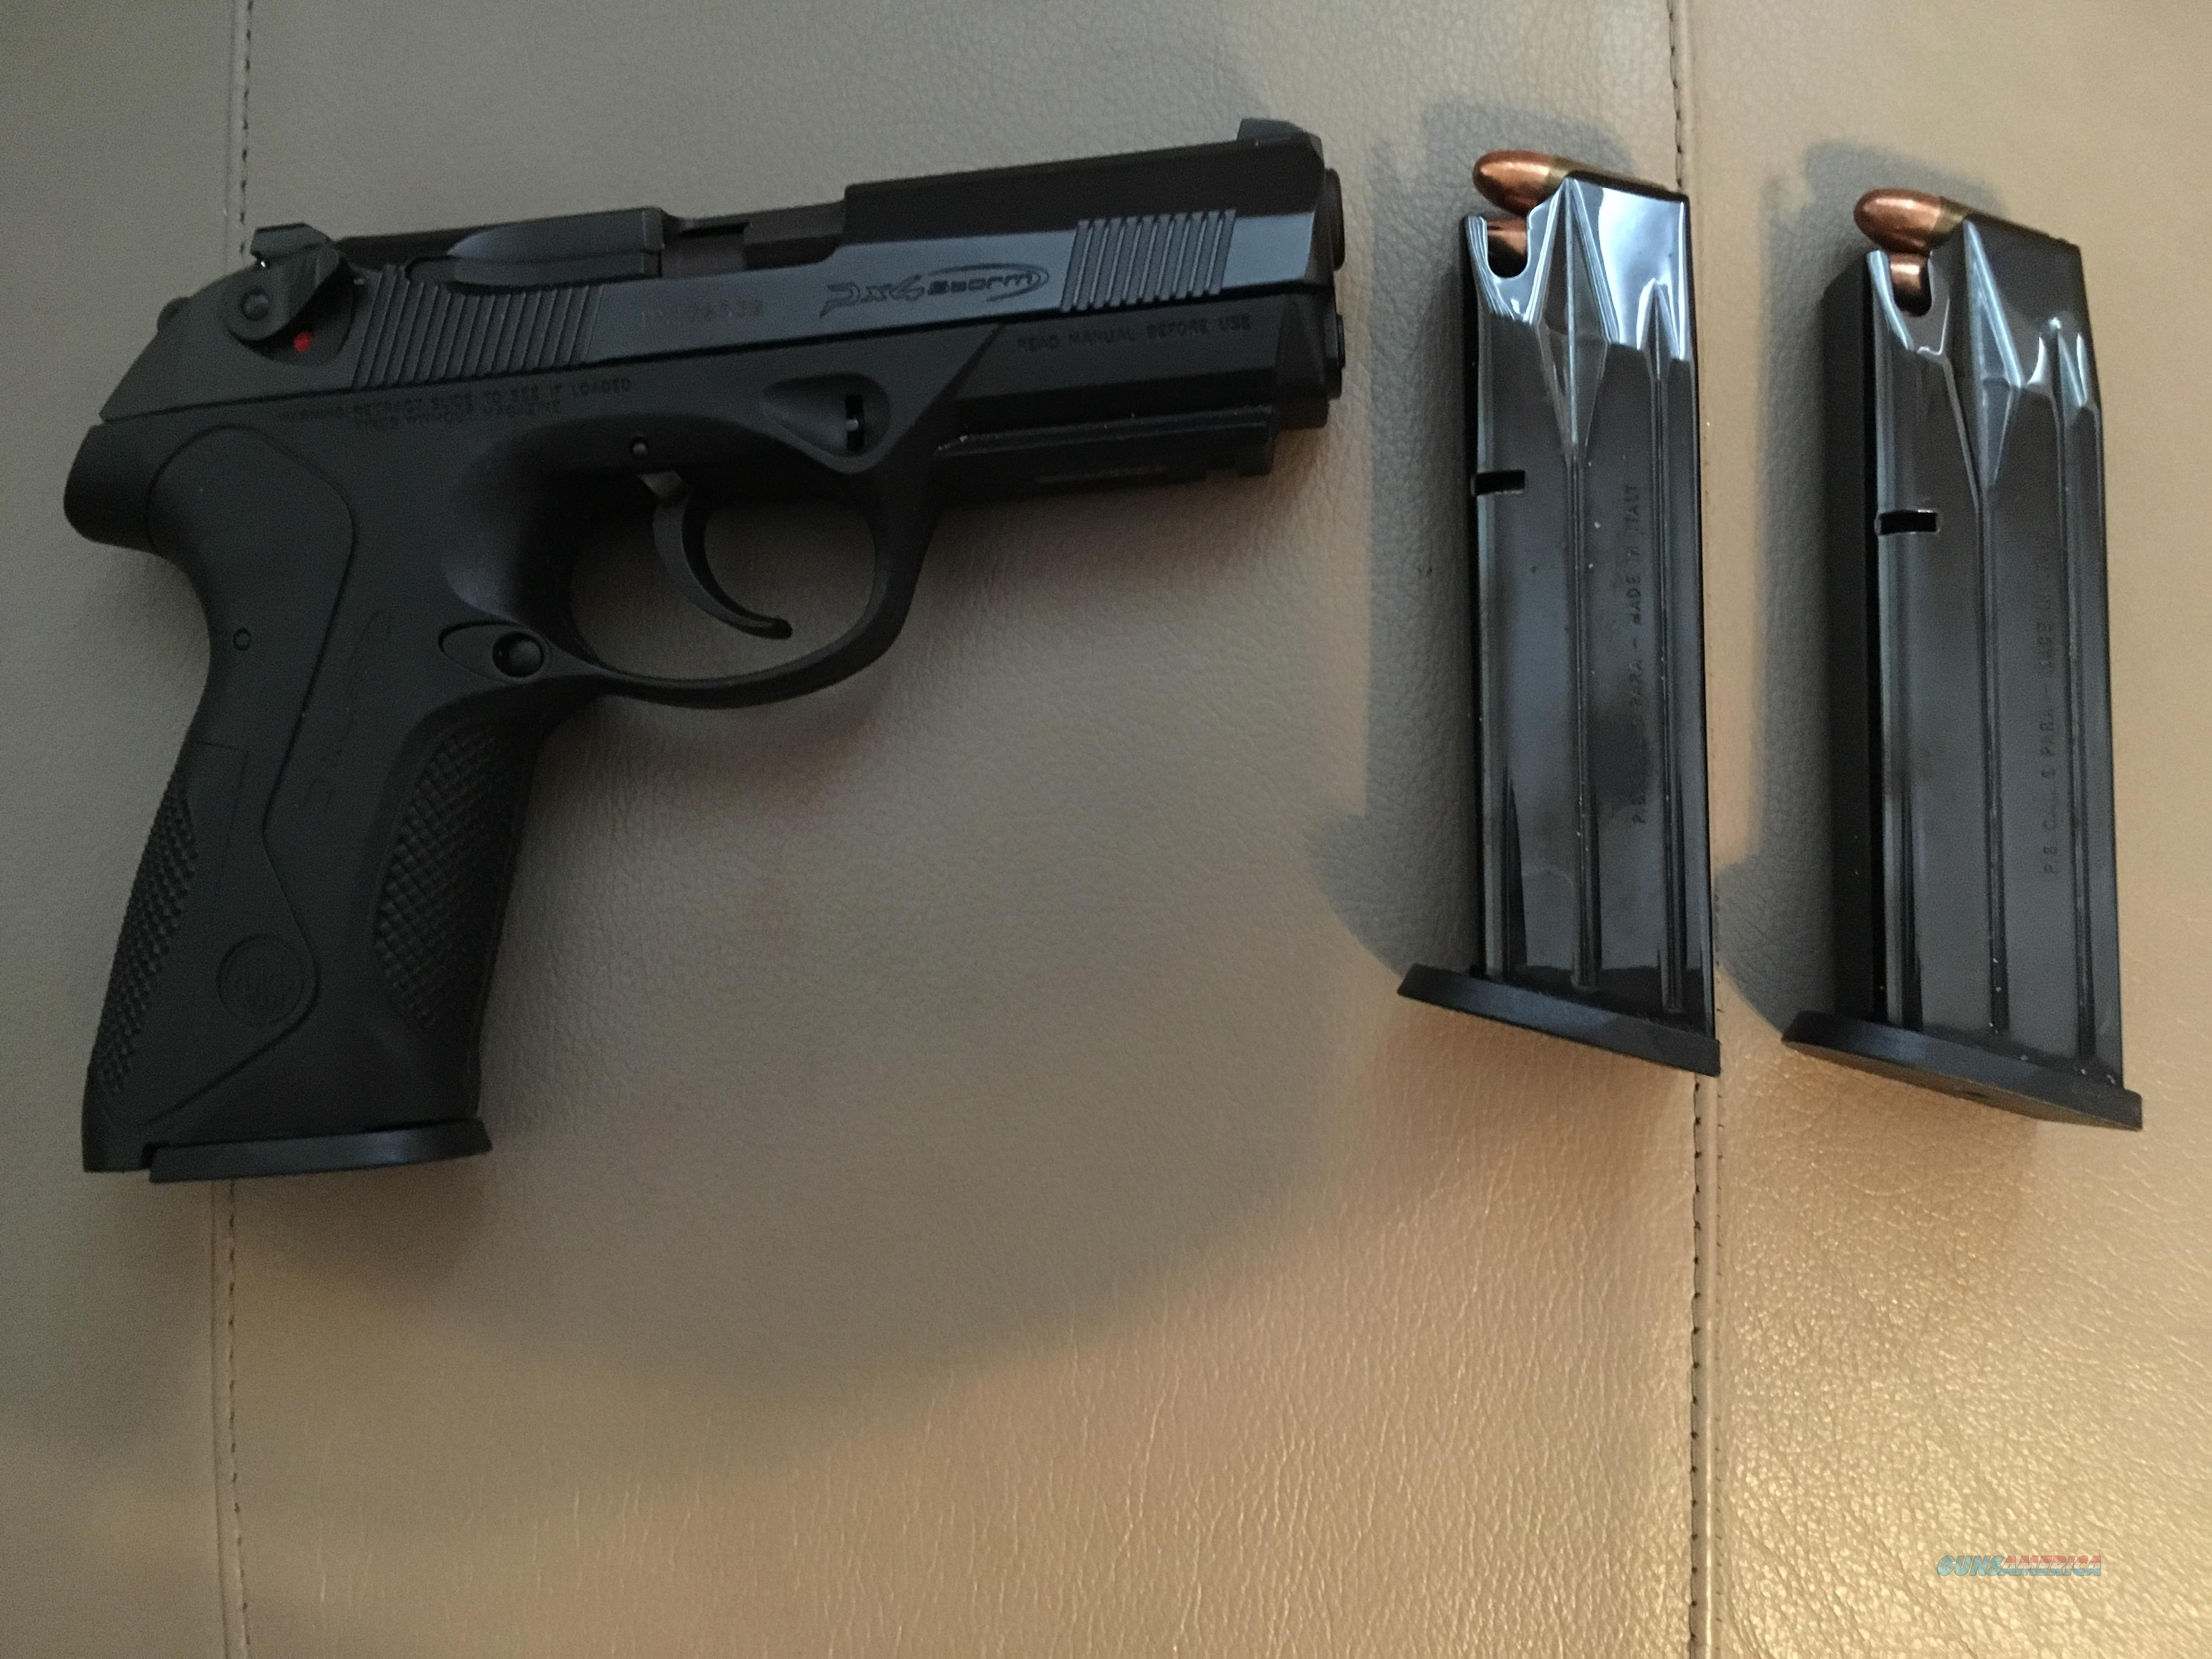 BERETTA 9MM PX4 STORM 17 RDS  3 MAGAZINES  FULLY LOADED  Guns > Pistols > Beretta Pistols > Model 92 Series